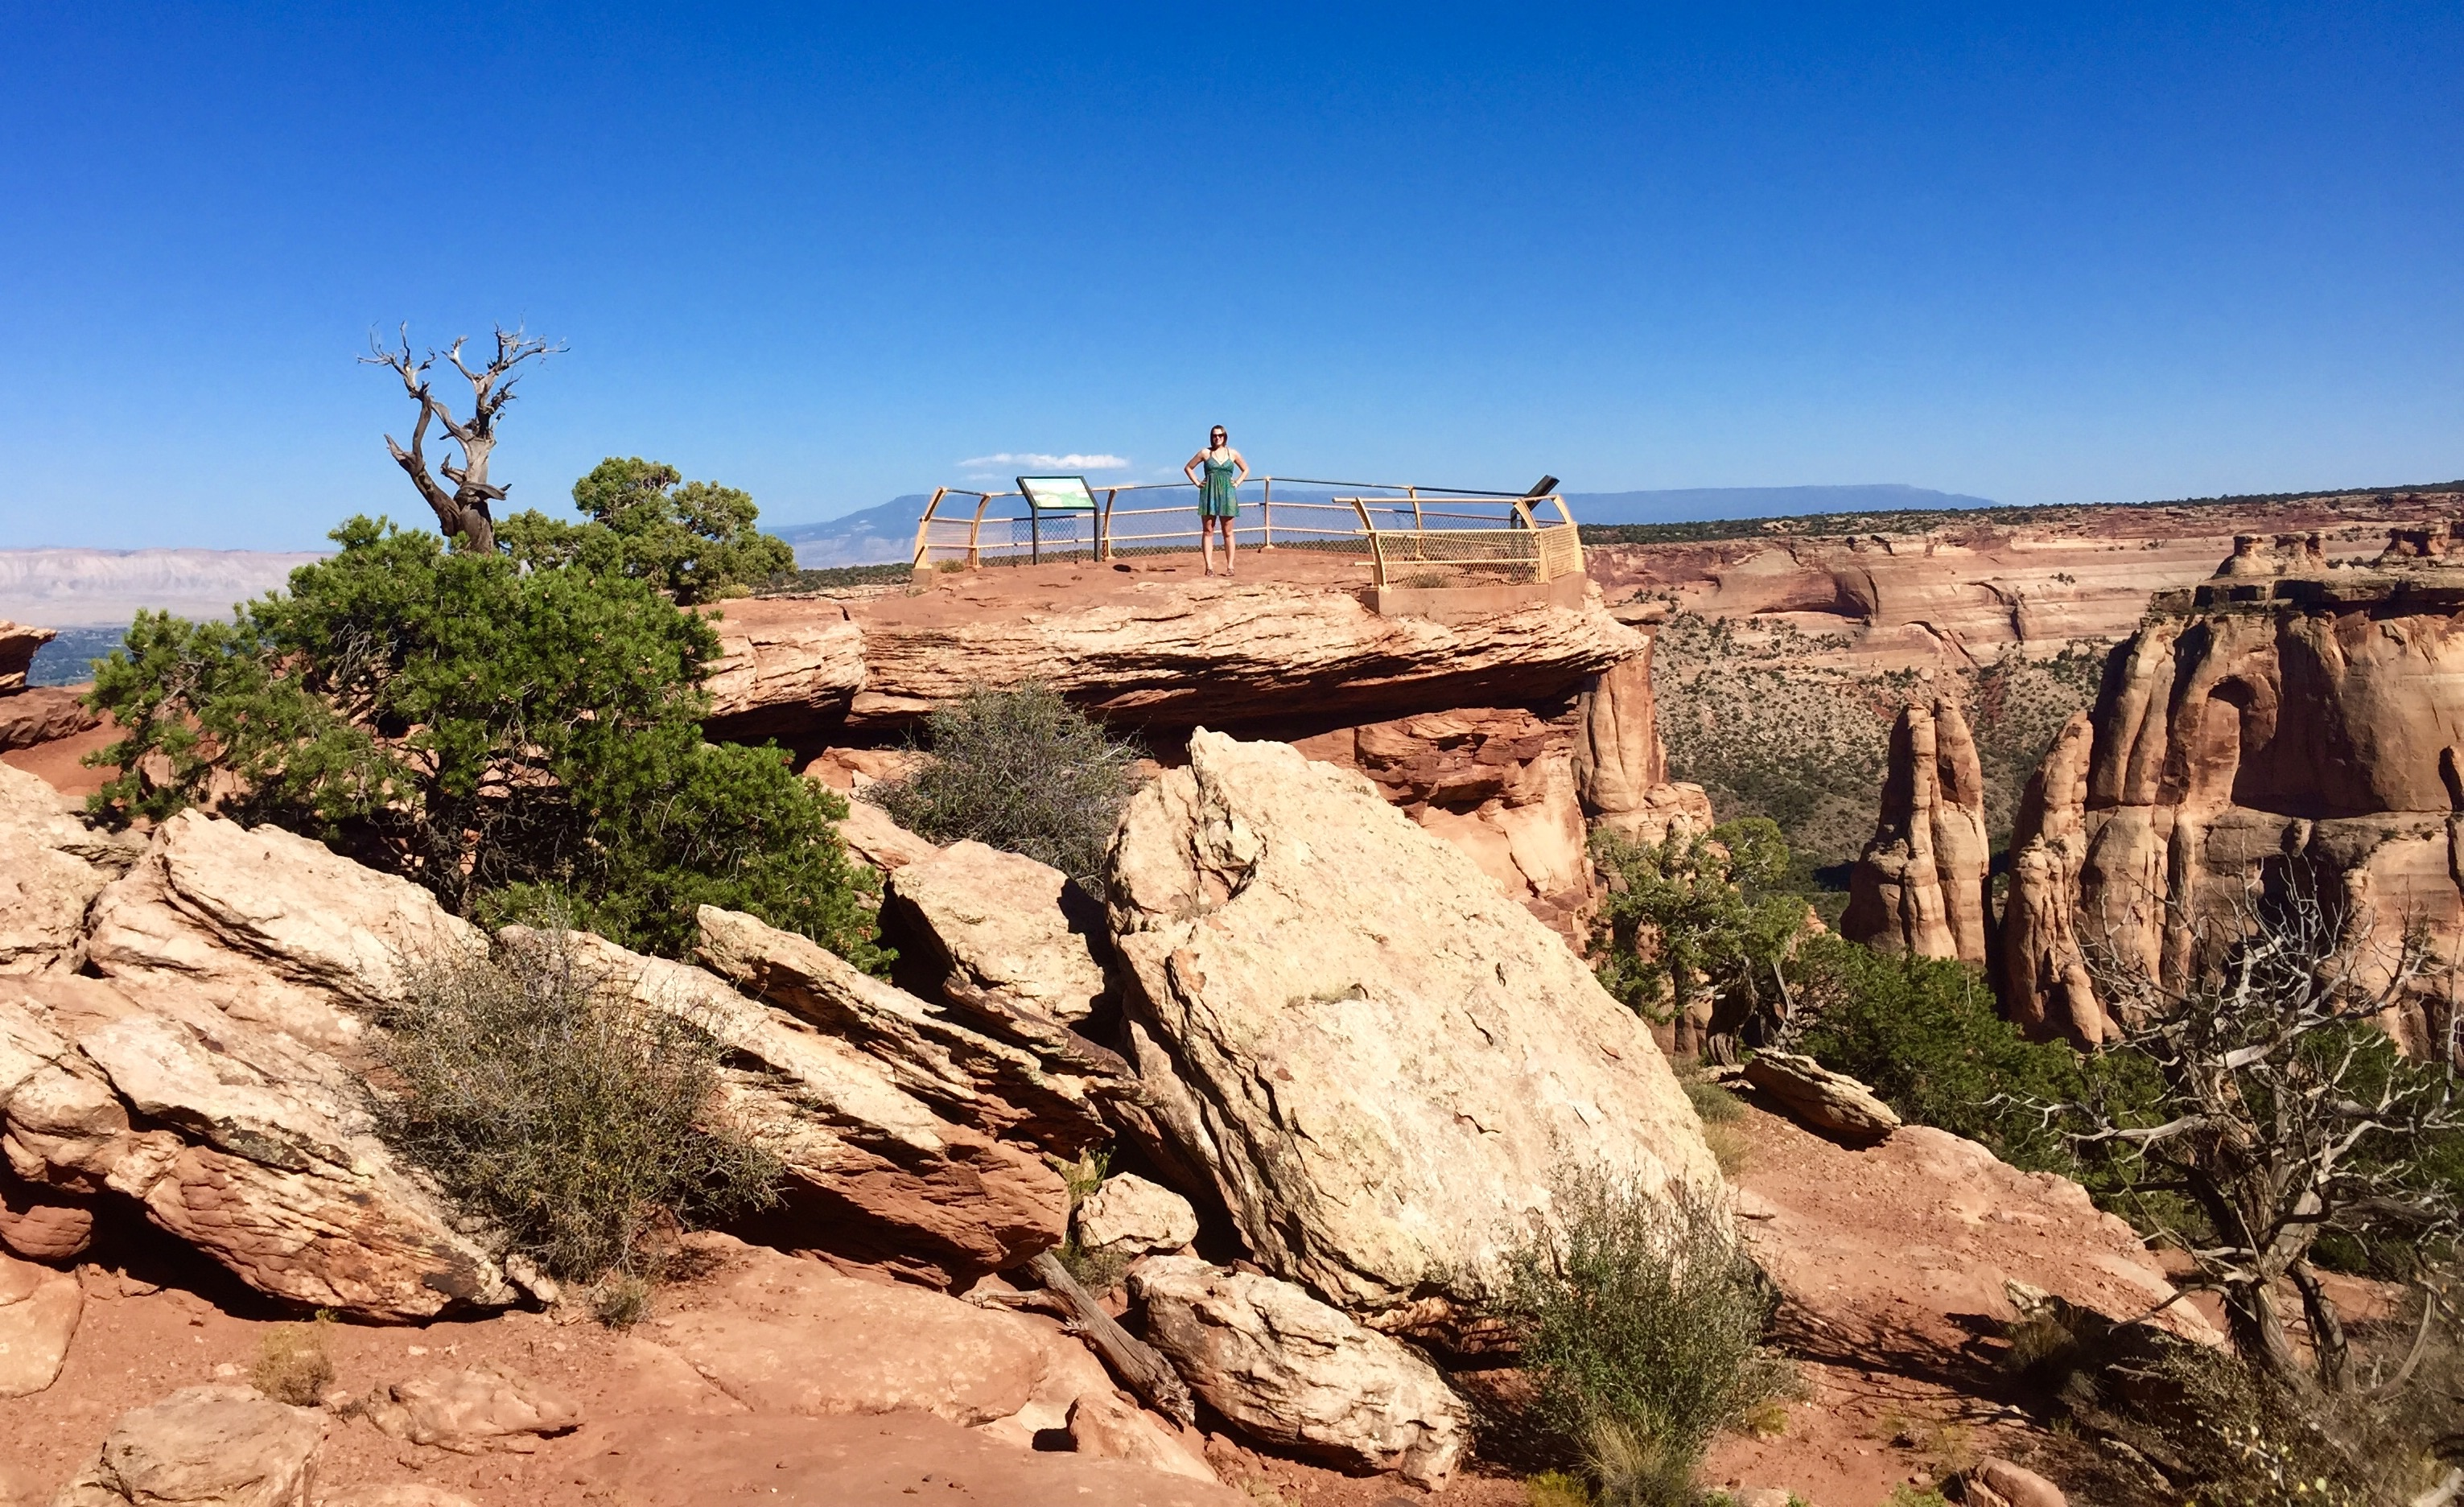 Overlook at the Colorado National Monument